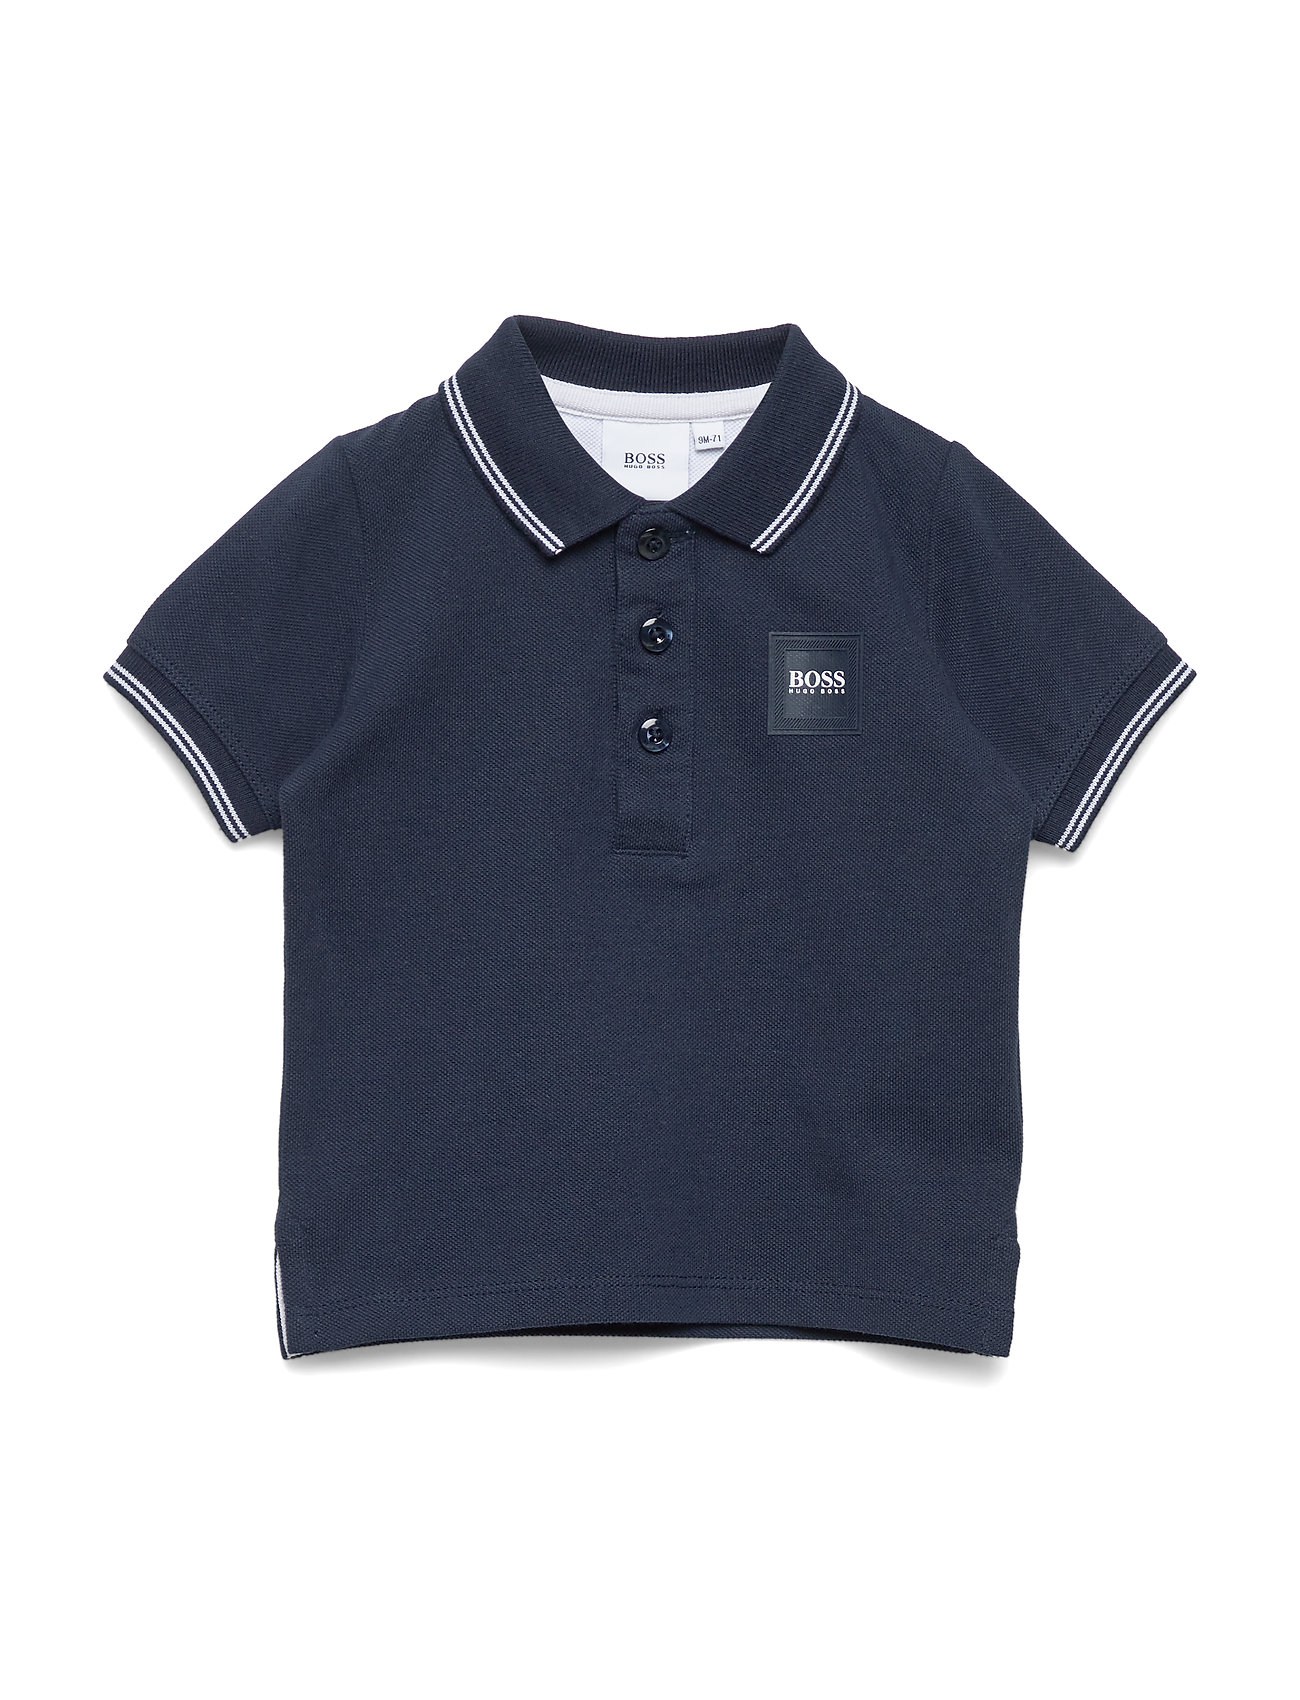 BOSS SHORT SLEEVE POLO - NAVY